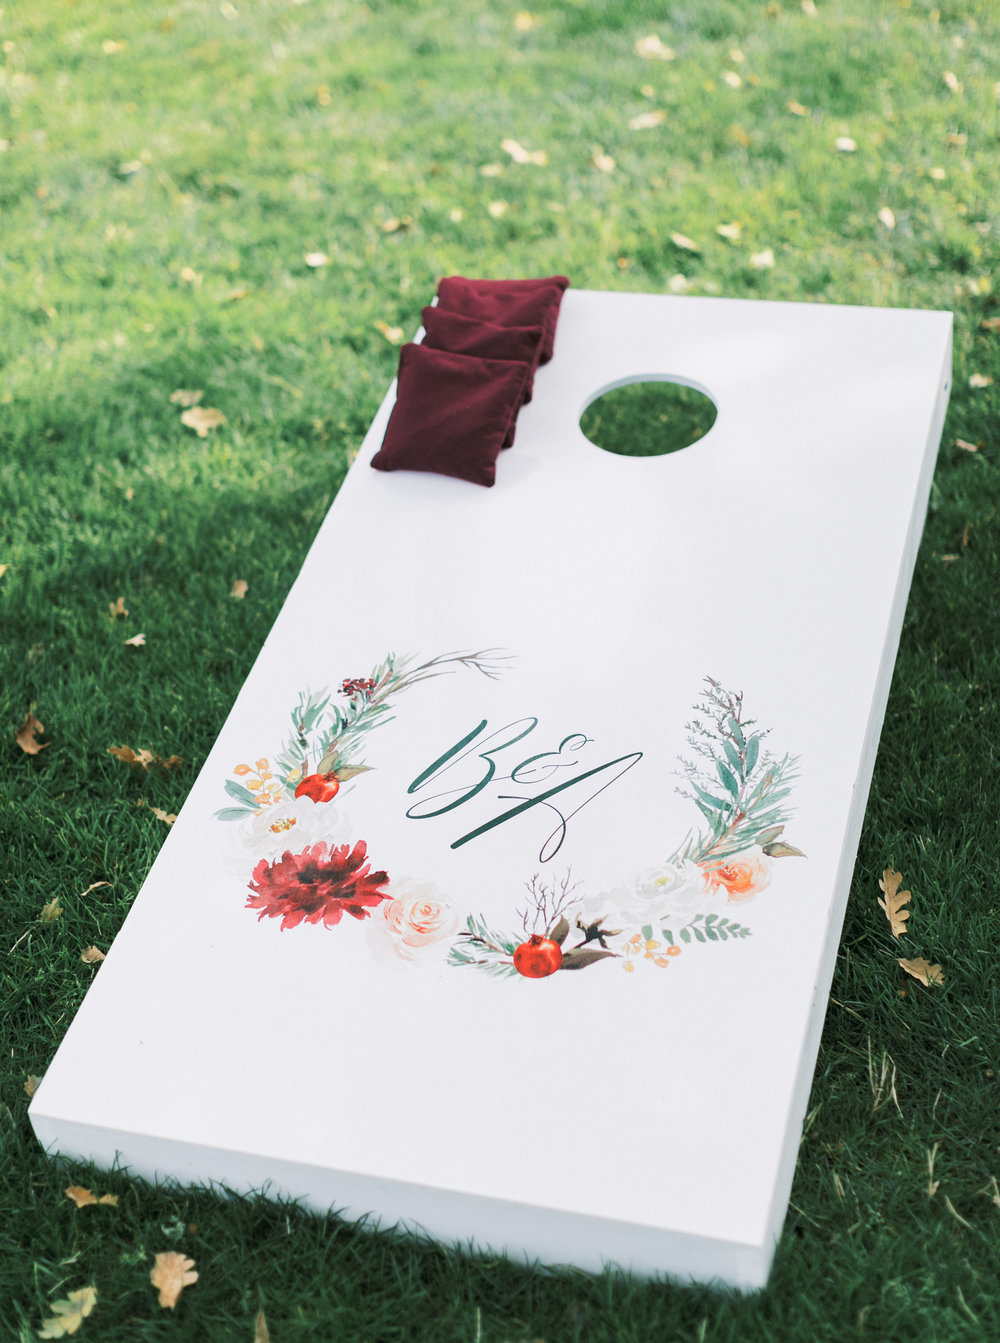 72. Personalized Bag Toss.jpg